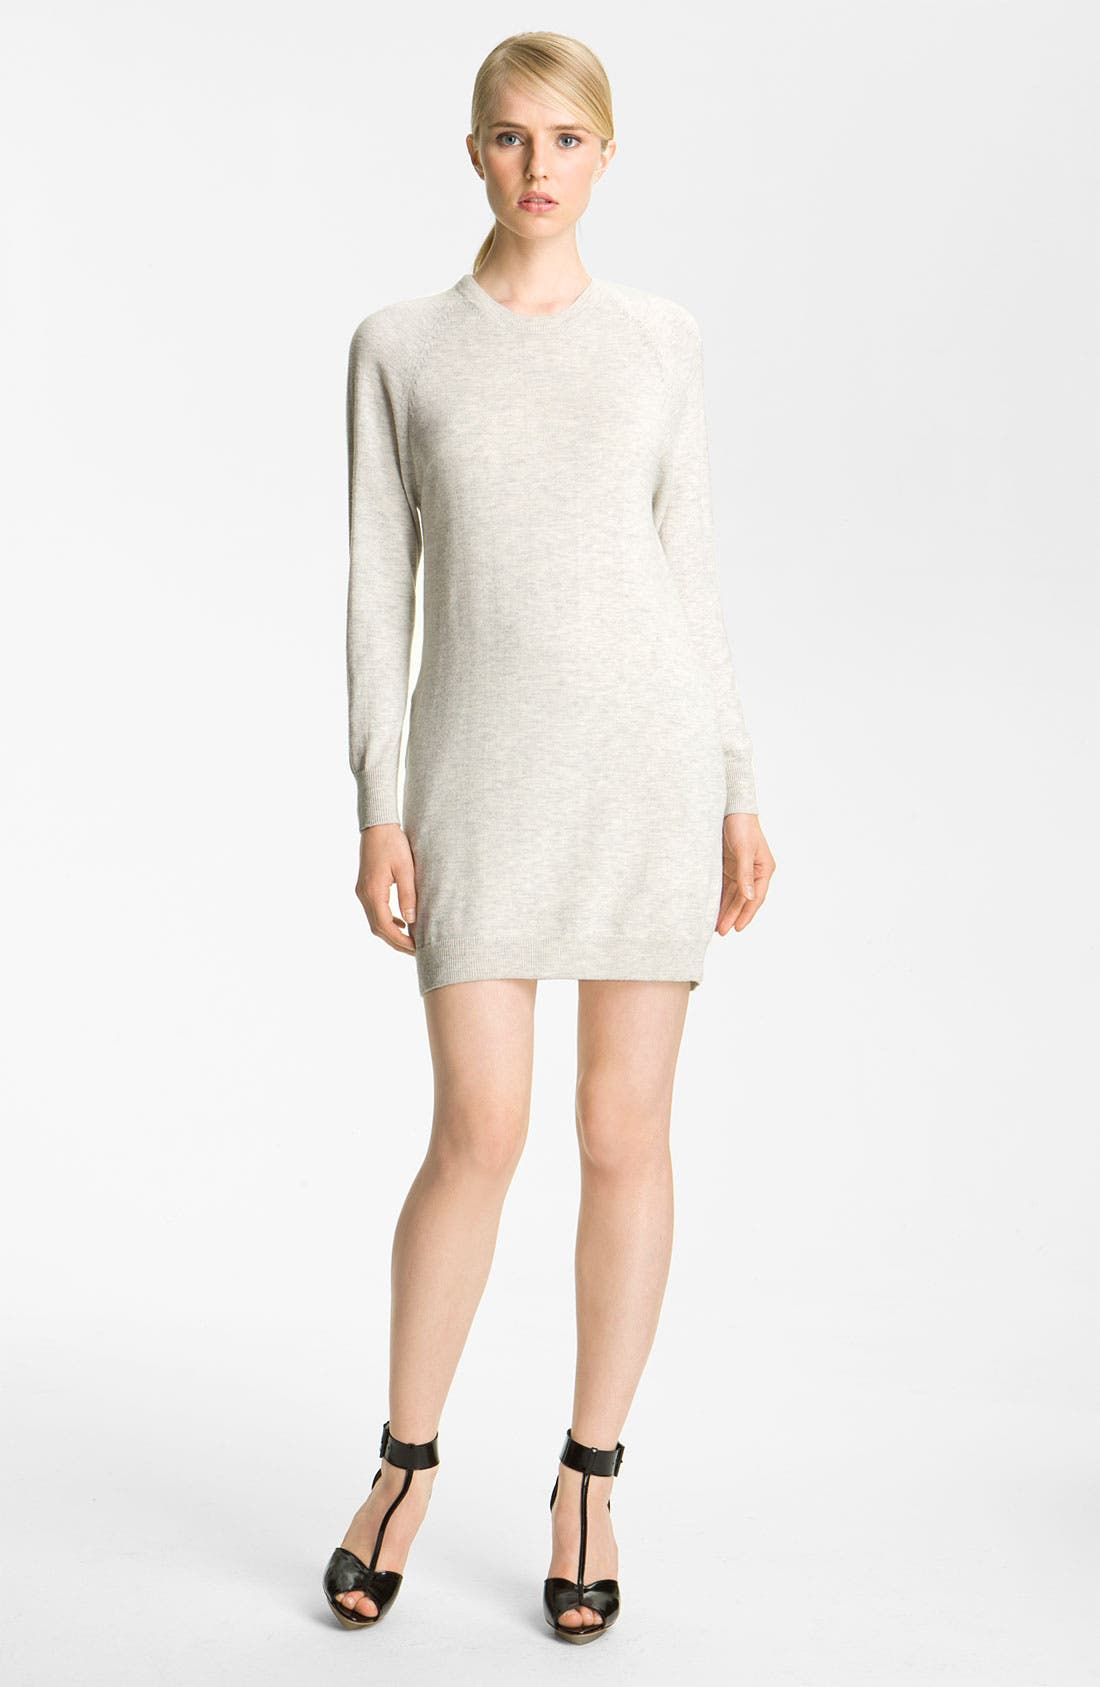 Main Image - 3.1 Phillip Lim Sweater Dress